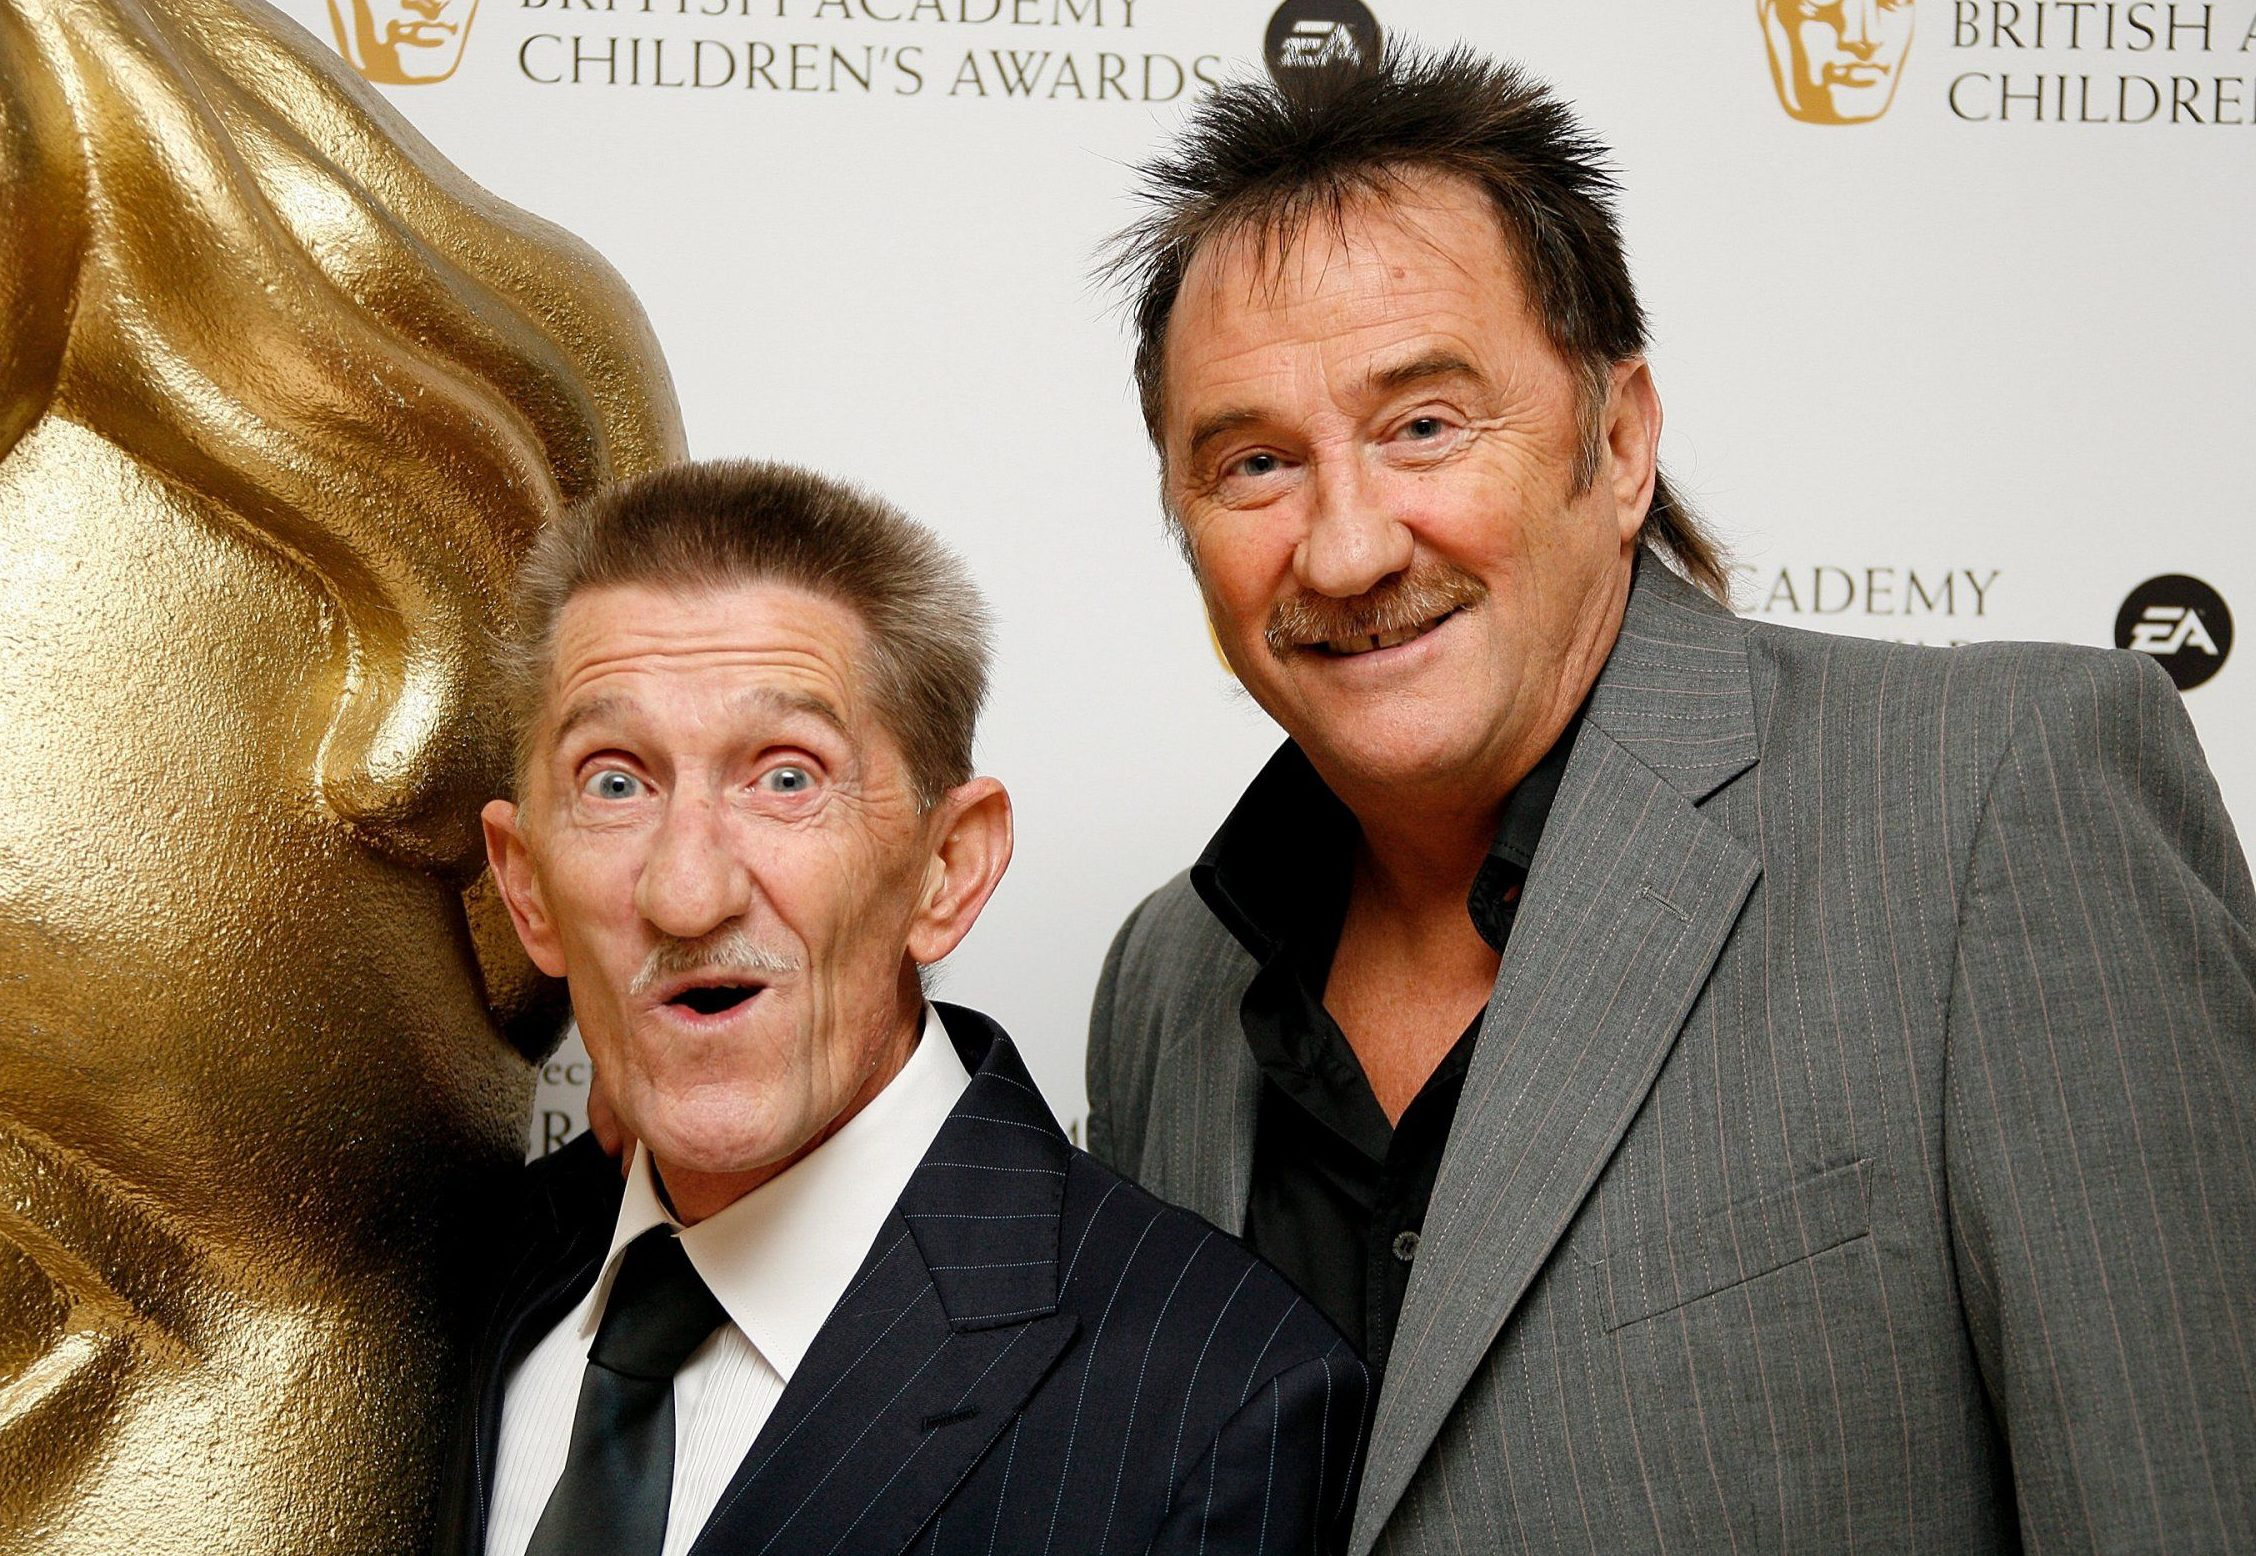 LONDON - NOVEMBER 30: (UK TABLOID NEWSPAPERS OUT) Barry Elliot and Paul Elliot, aka The Chuckle Brothers, arrive at the British Academy Children's Film and Television awards at the London Park Lane Hilton, Park Lane on November 30, 2008 in London, England. (Photo by Gareth Davies/Getty Images) The entertainer, whose real name was Barry Elliott, half of the comedy duo the Chuckle Brothers, has died aged 73.